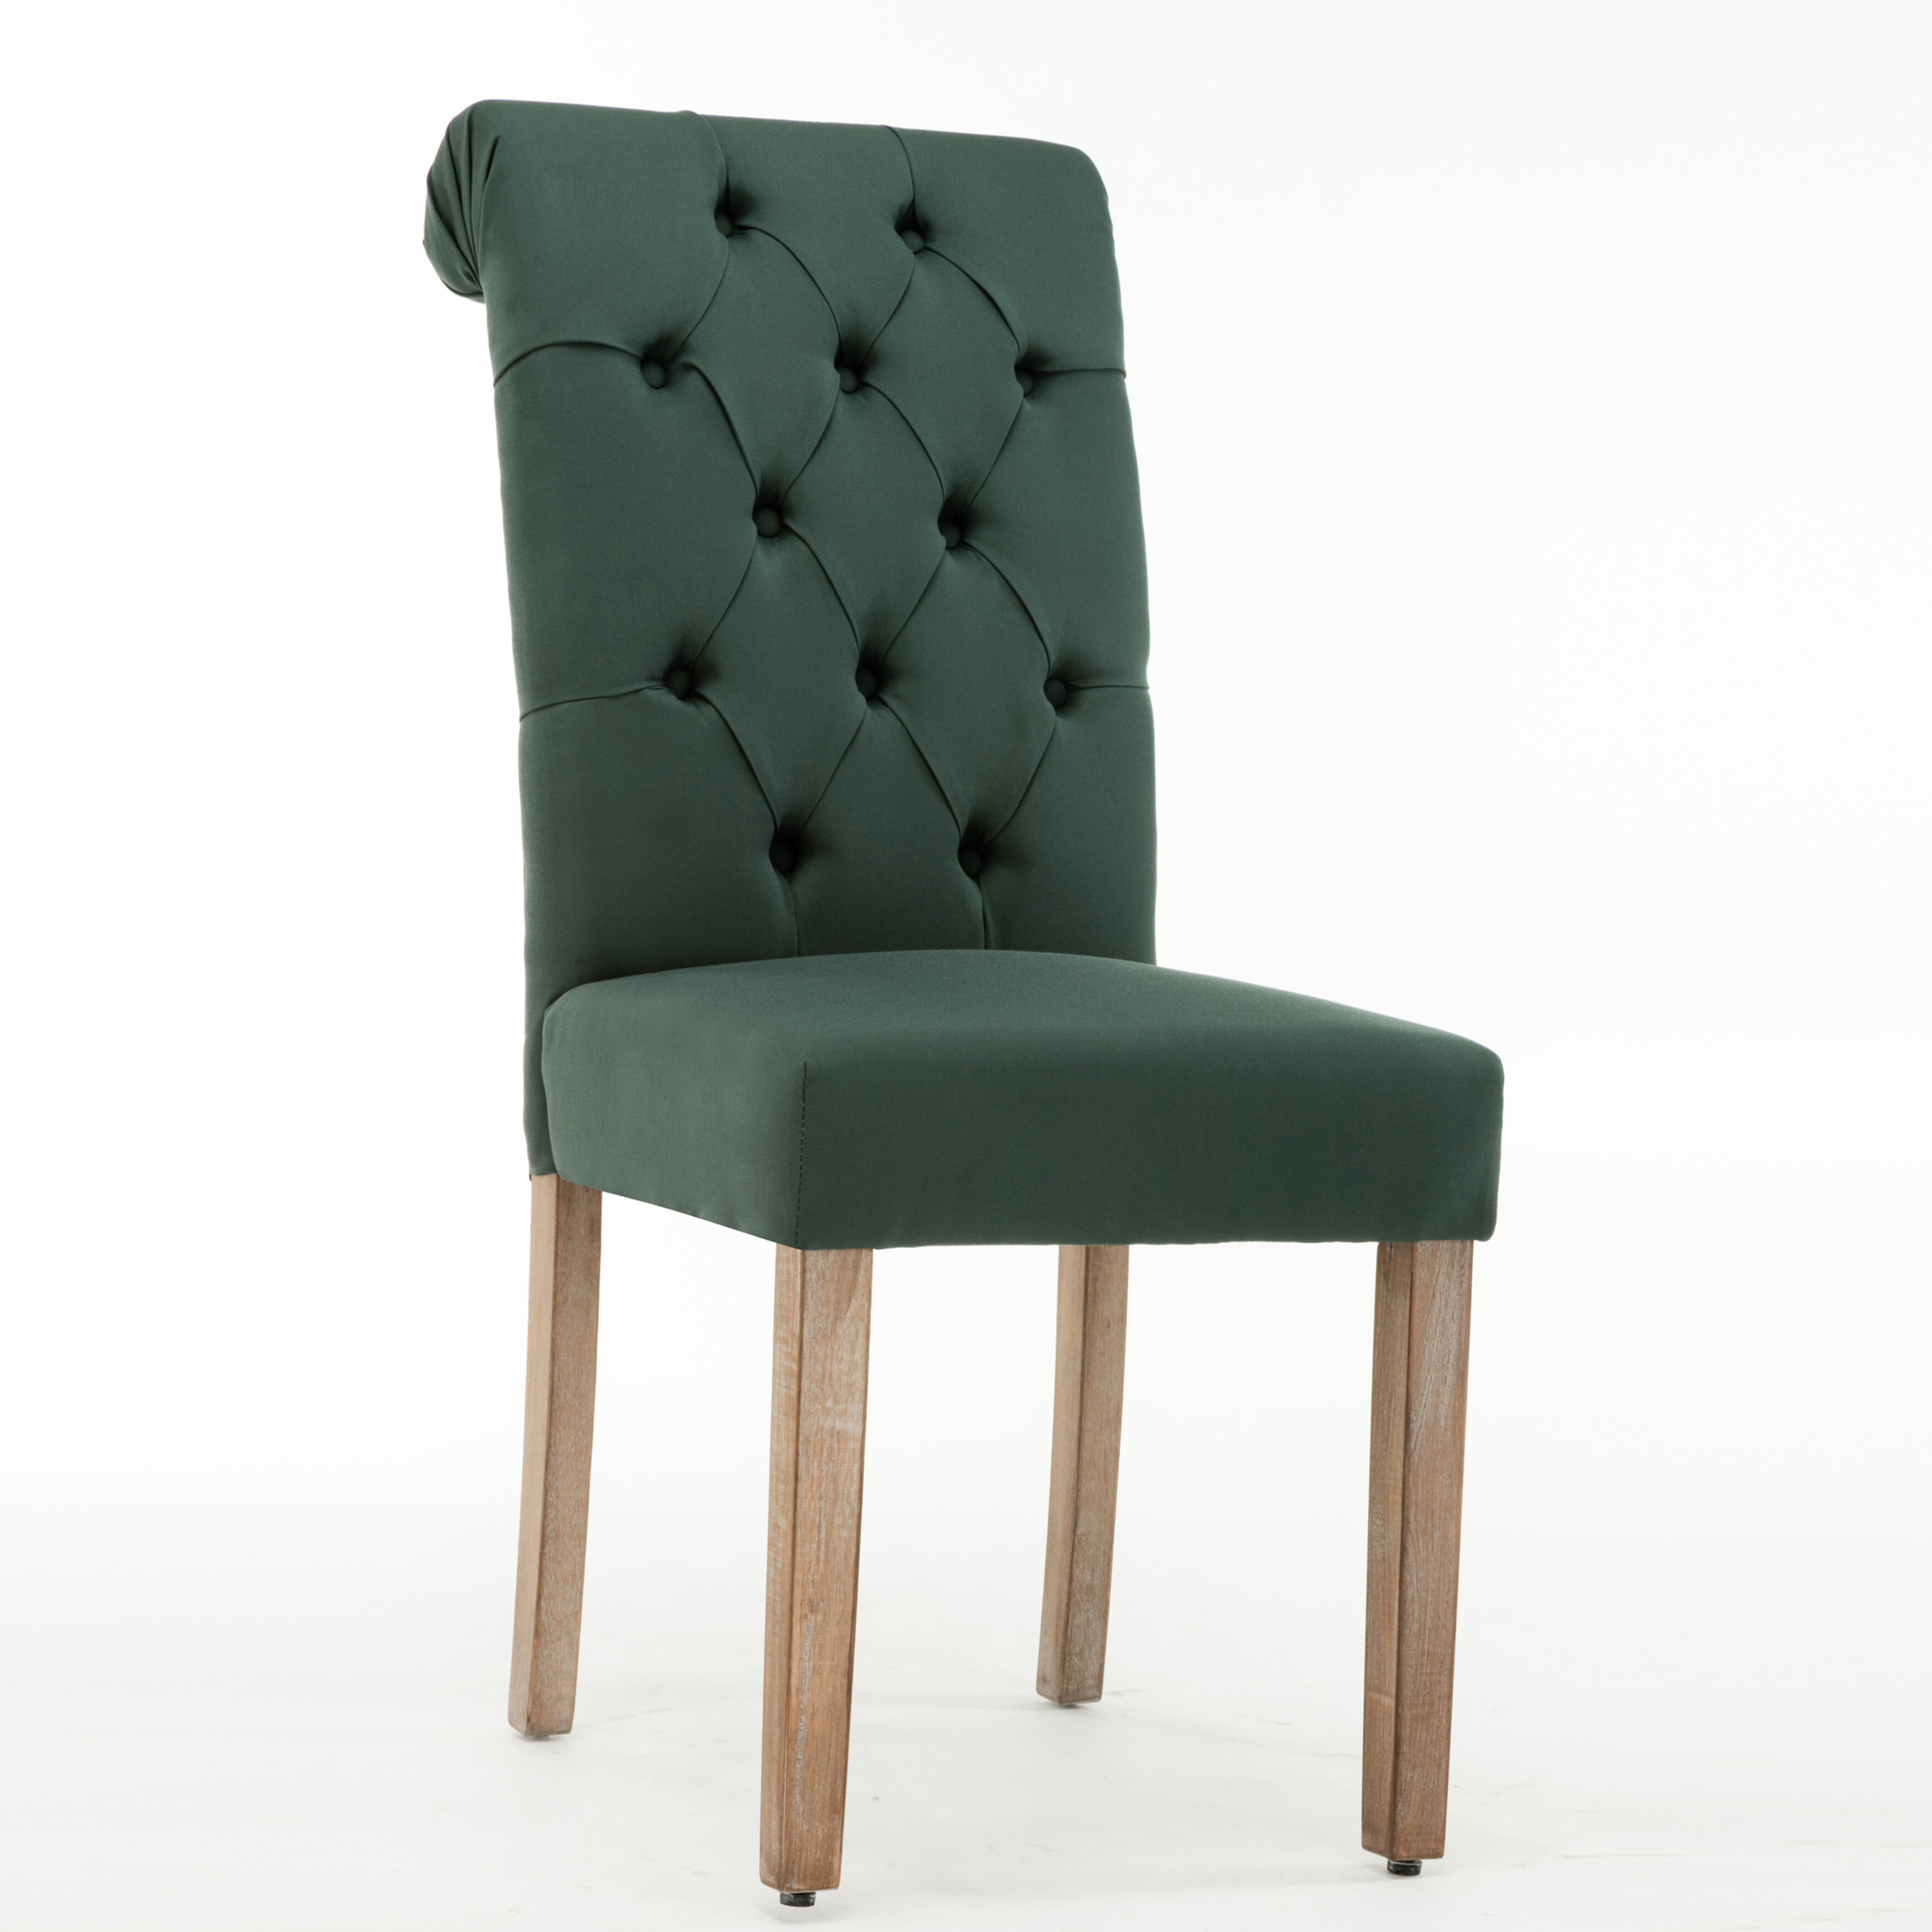 upholstered tufted dining chairs contemporary dining ansonia roll top tufted modern upholstered dining chair reviews joss main